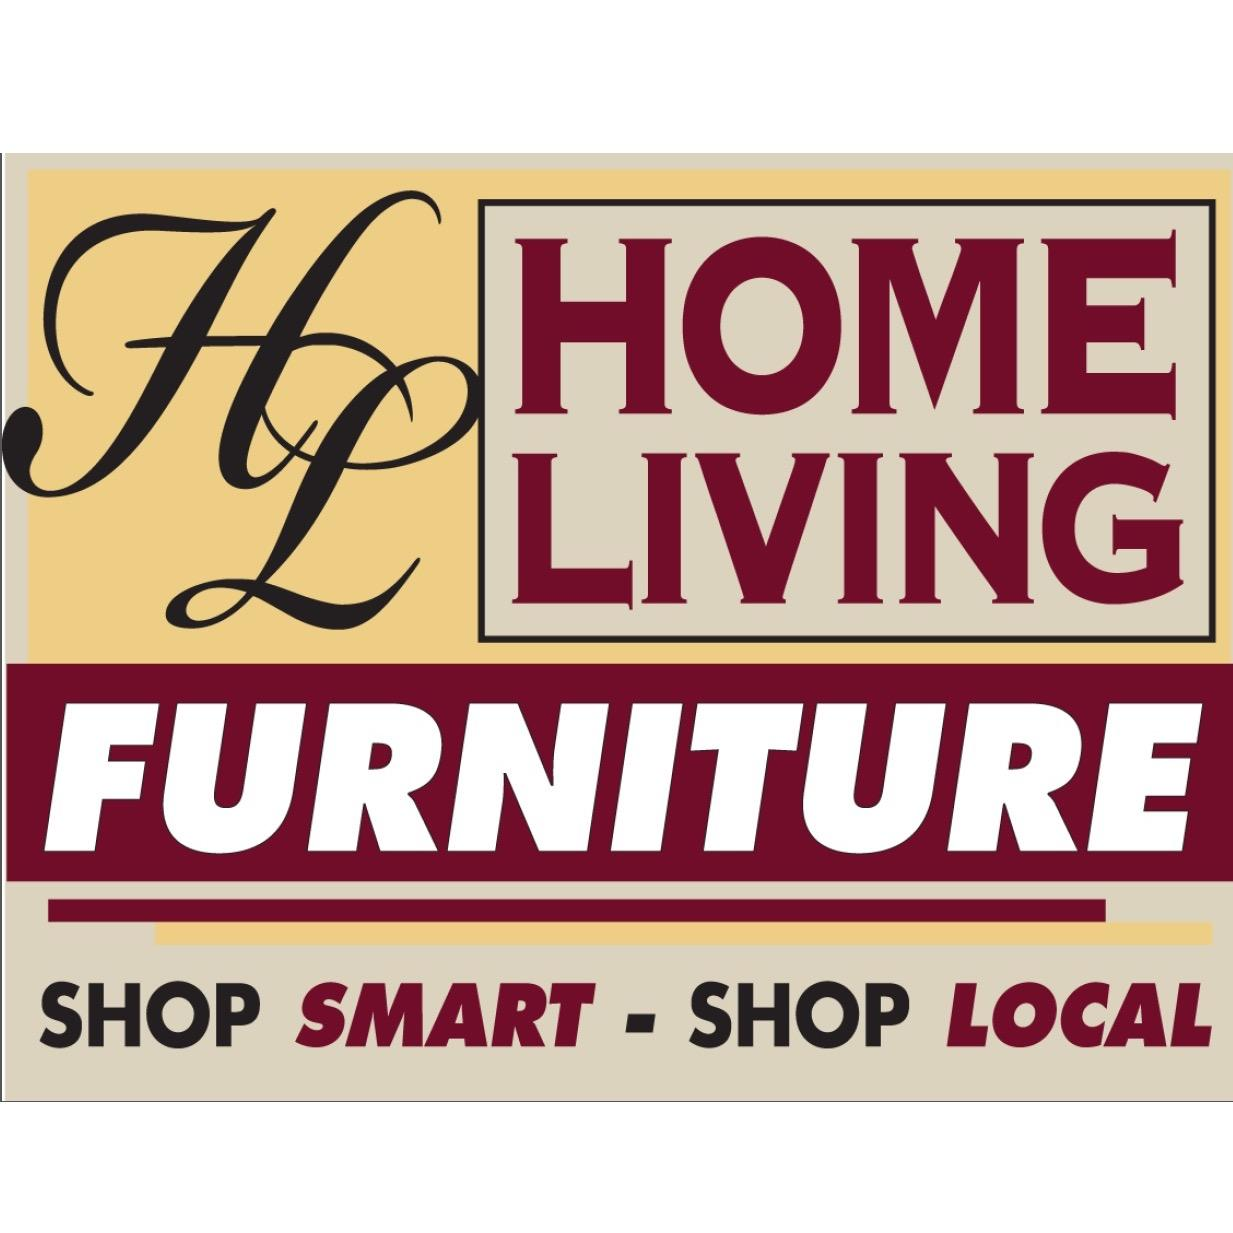 Home living furniture in howell nj 07731 Home furniture usa nj